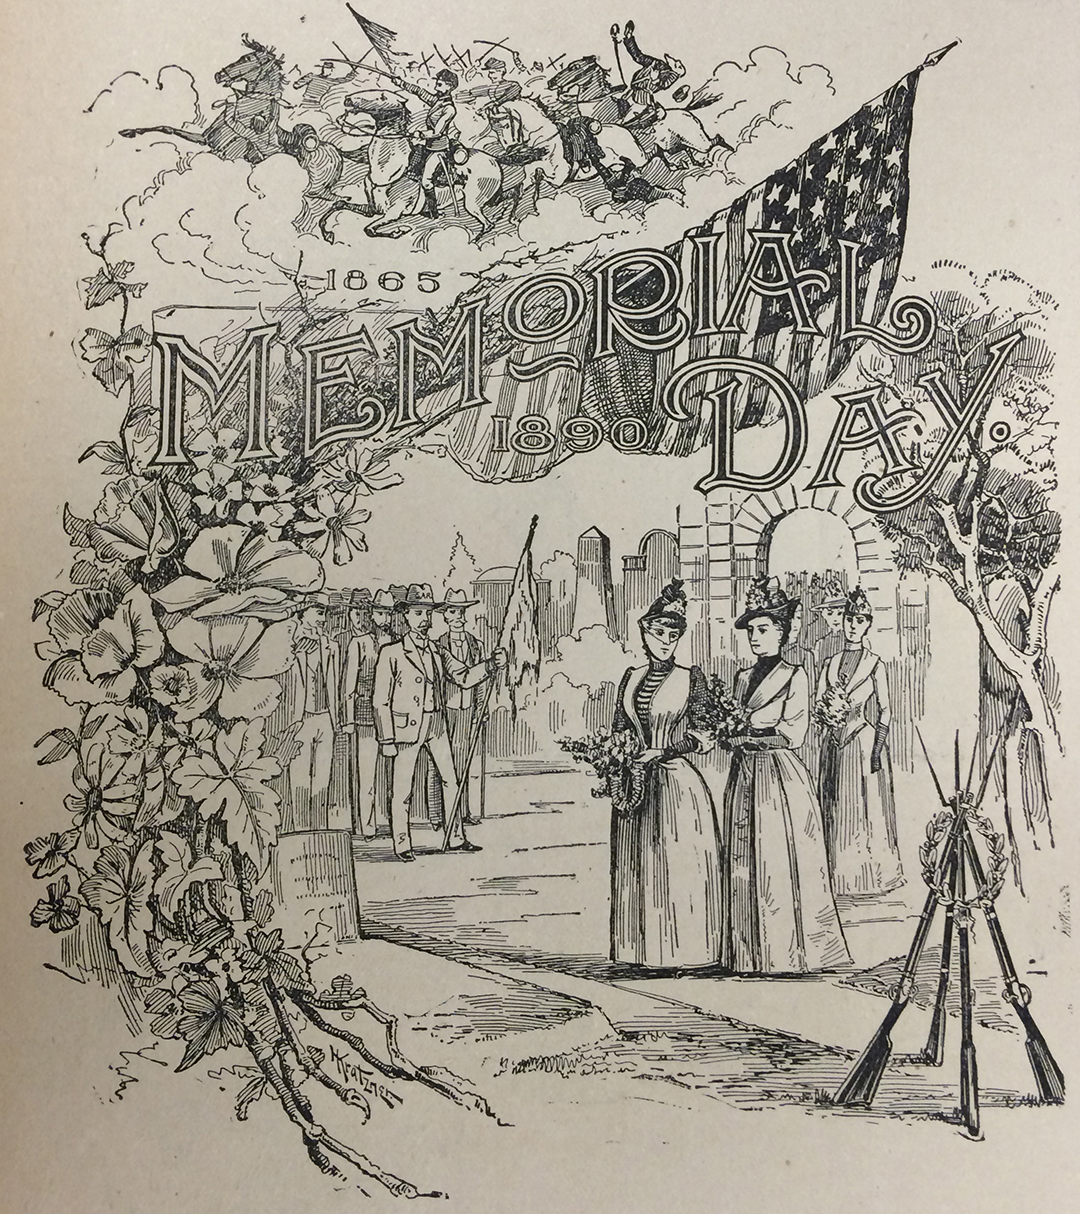 Memorial Day illustration from the Wright Brothers' newspaper, The Evening Item, May 24, 1890.